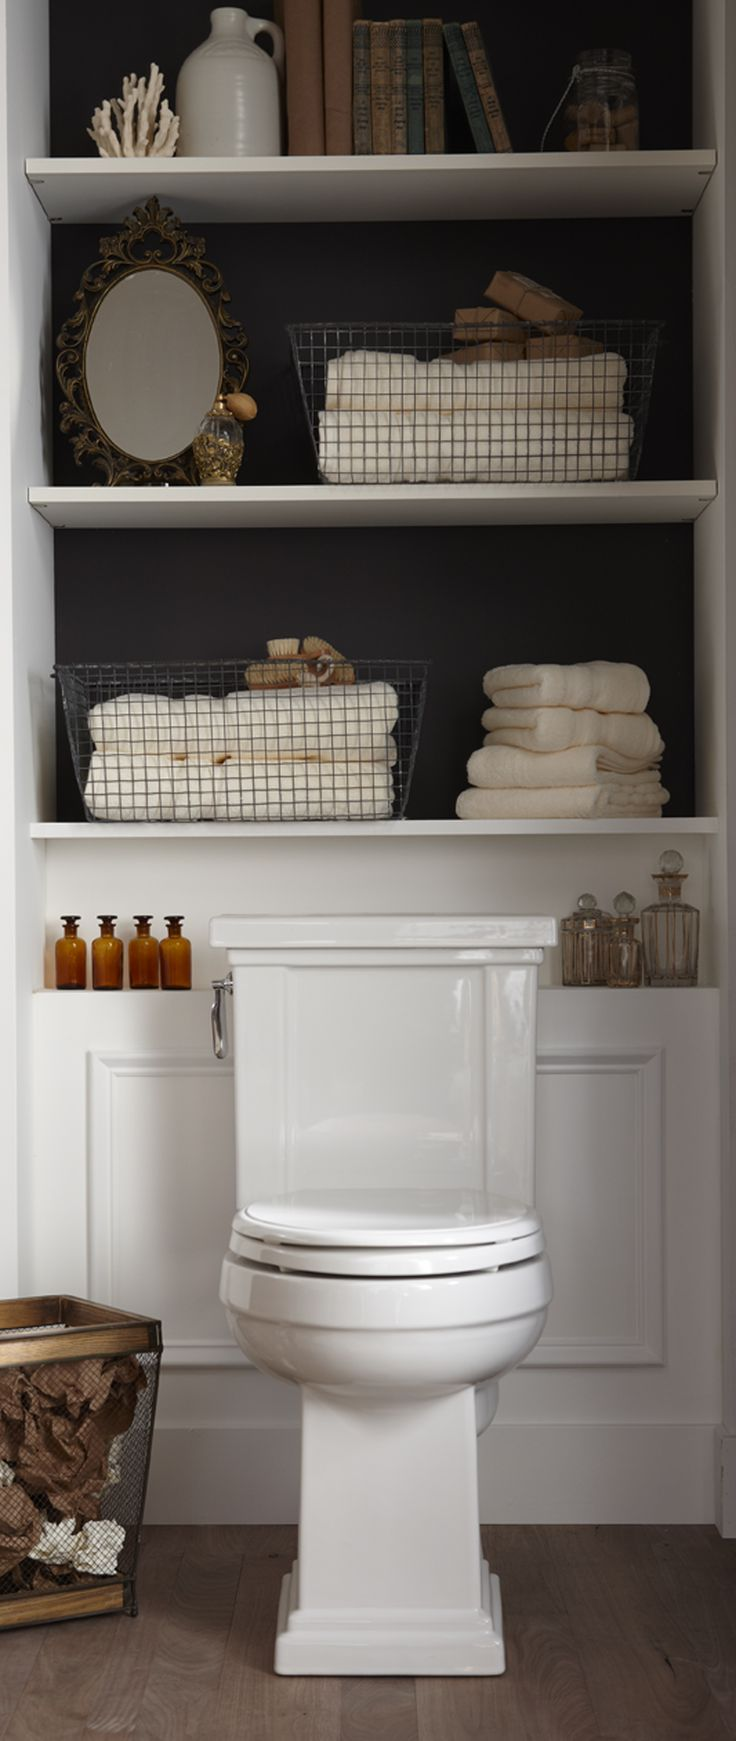 Built-in = great use of space.Powder Room, Half Bath, Bathroom Storage, Small Bathrooms, Bathroom Ideas, Master Bath, Halfbath, Wire Baskets, Bathroom Shelves